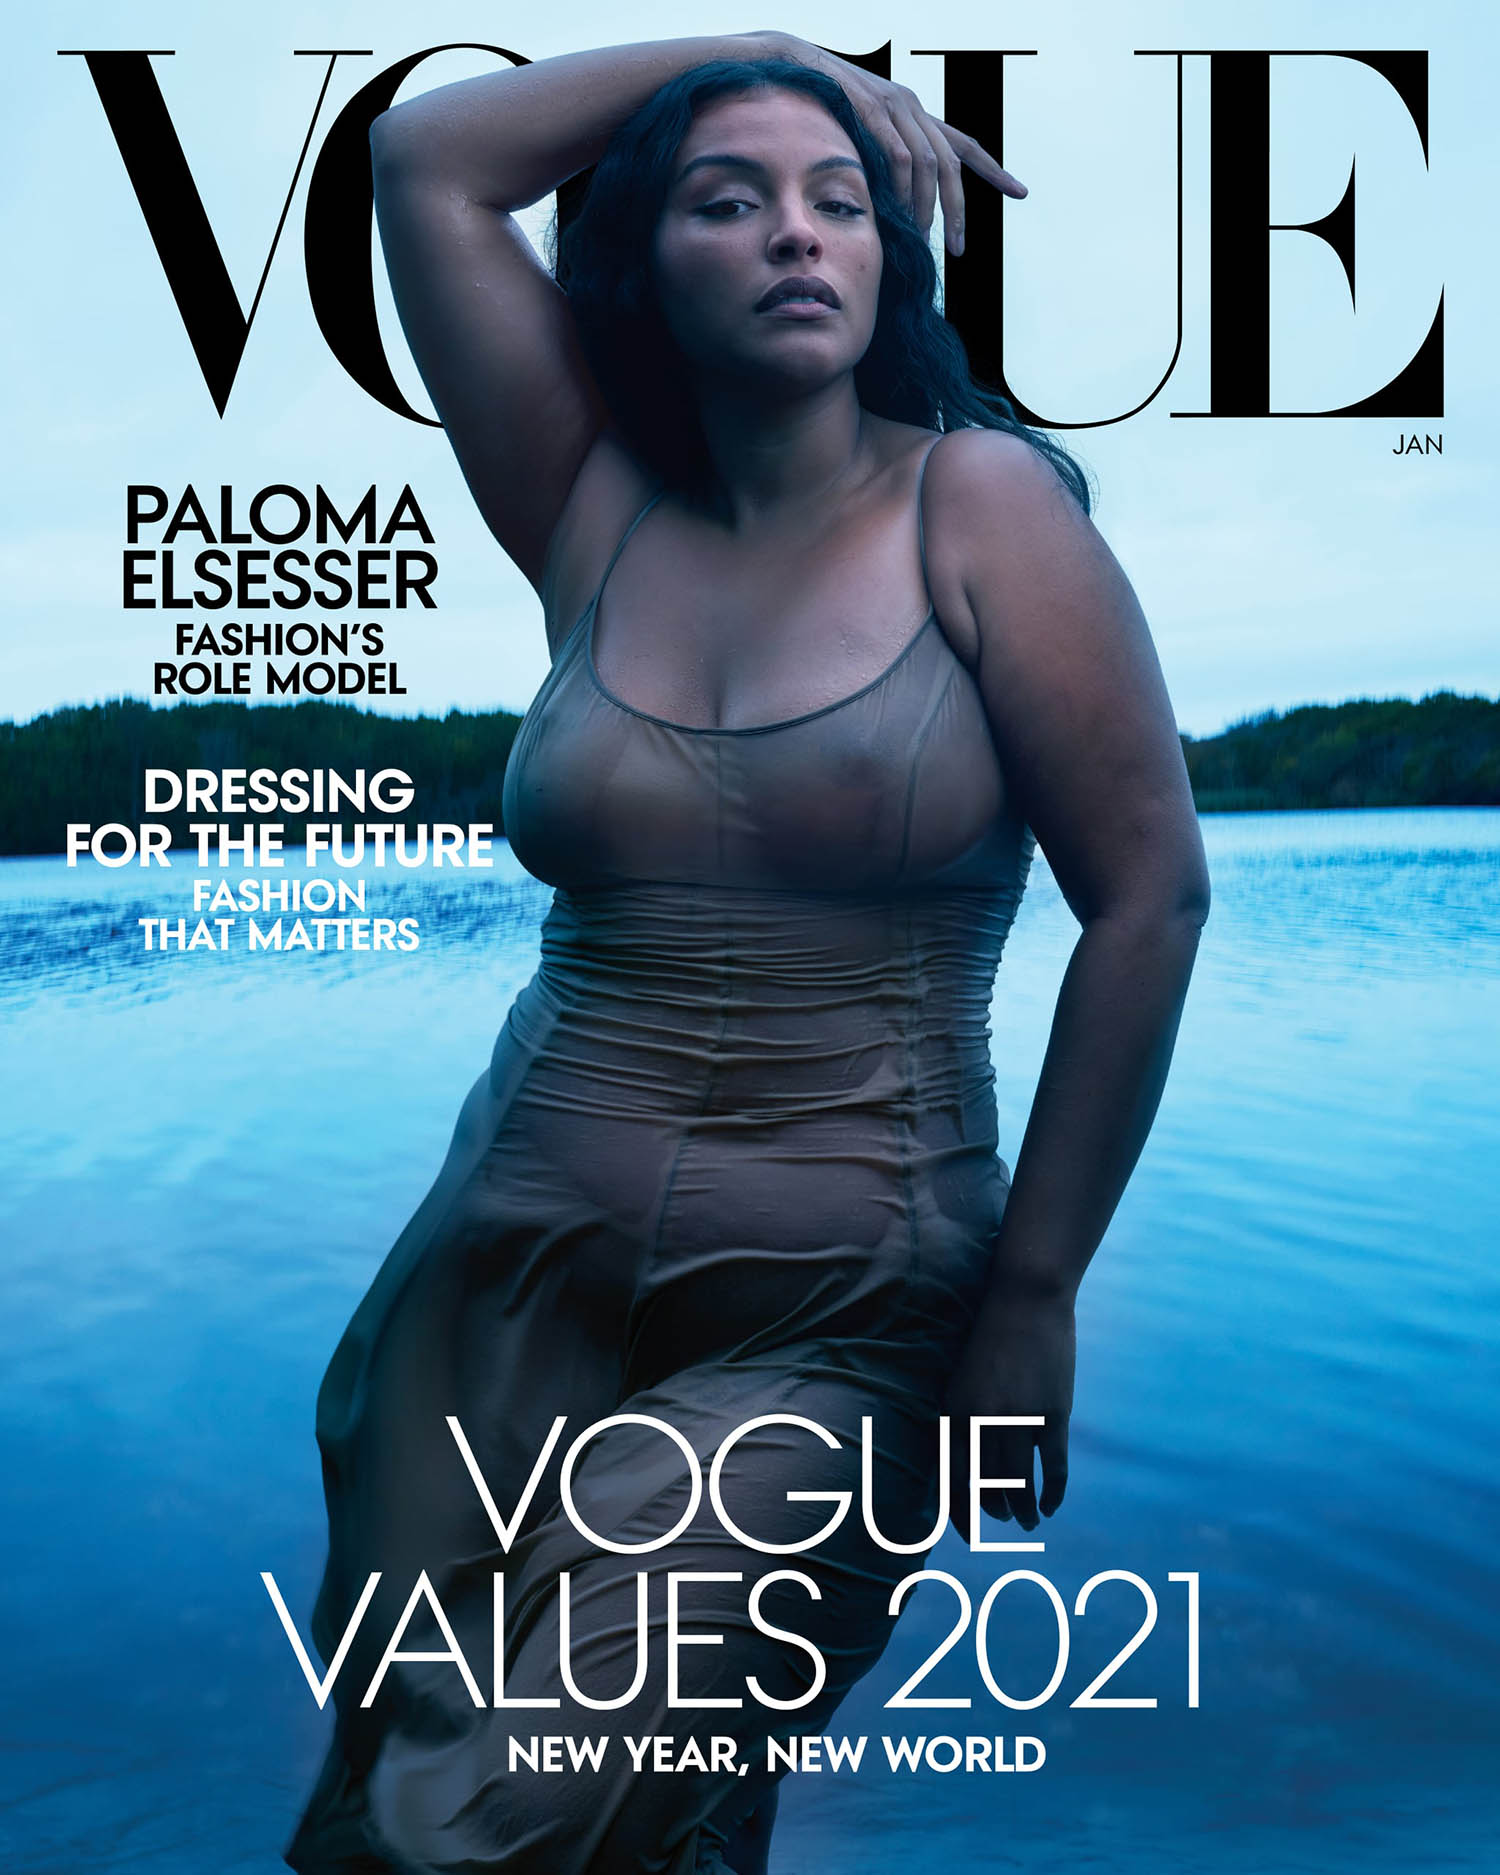 Vogue US January 2021 covers by Annie Leibovitz